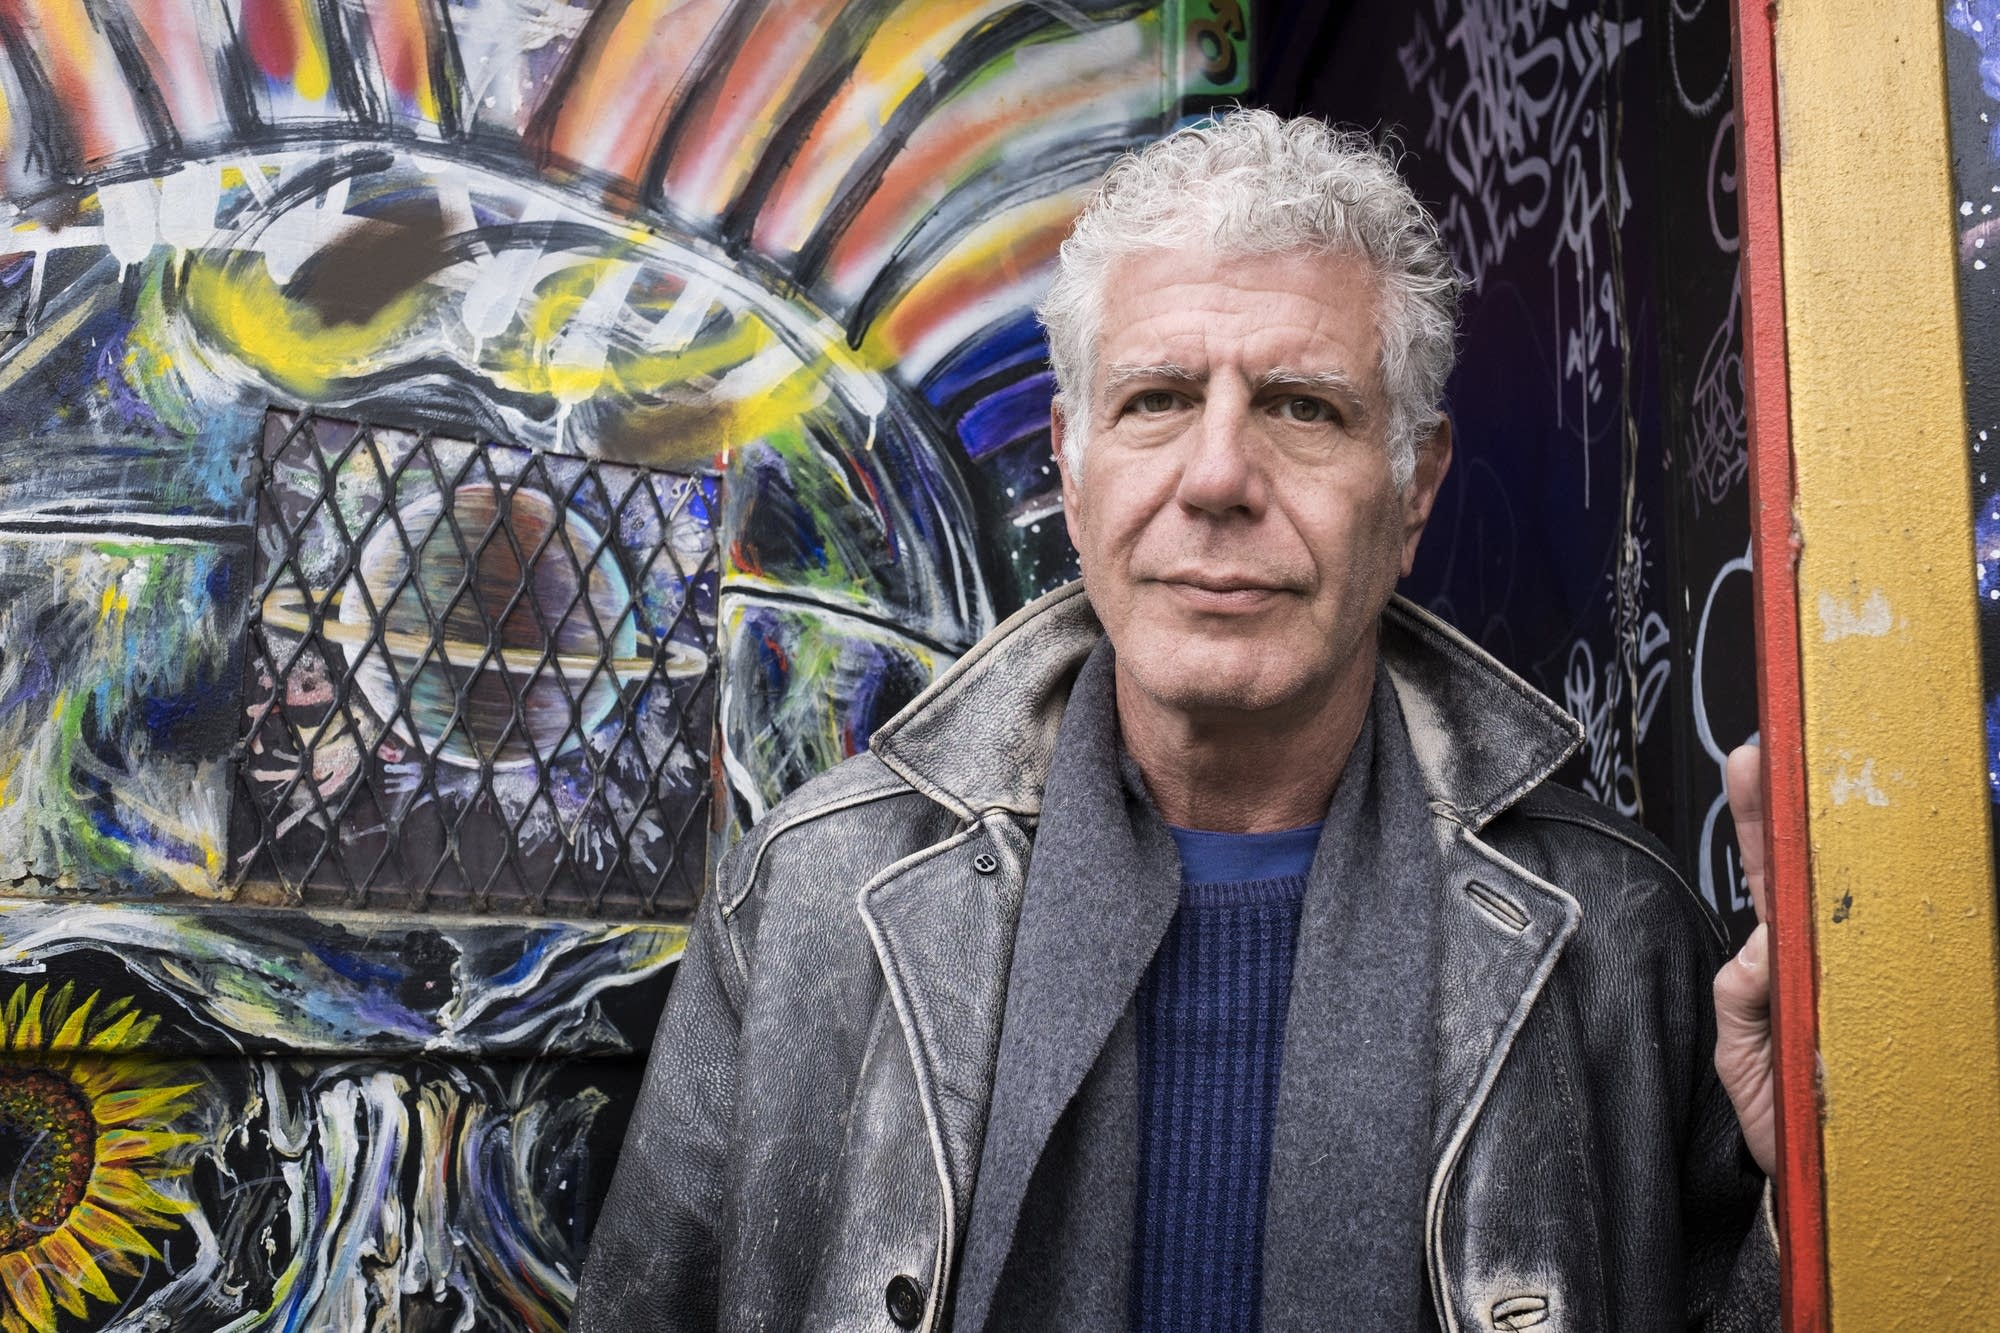 Anthony Bourdain - Parts Unknown: Lower East Side